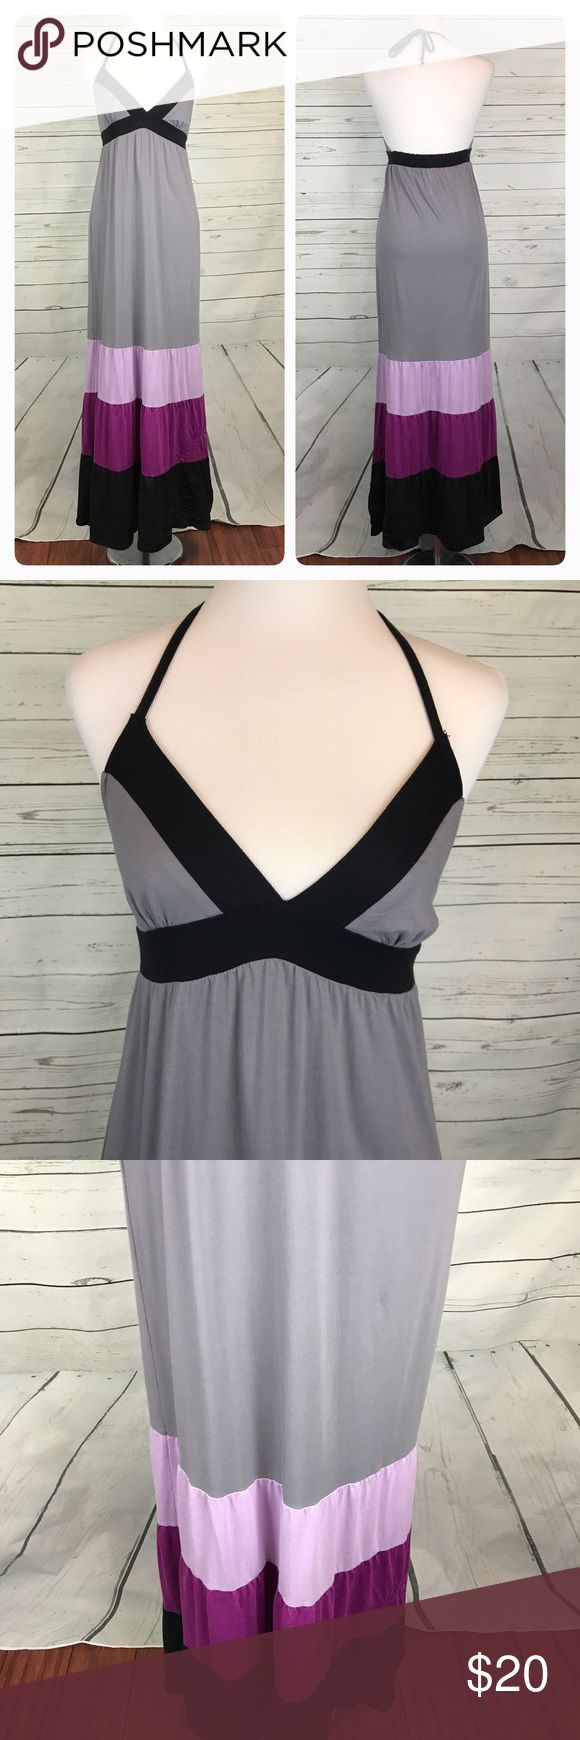 """Roxy Maxi dress color Block purple gray black Roxy women's size small Maxi dress. Halter tie back neckline. Color Block in gray, Lavender, purple, and black. Elastic back. Gently used, no flaws.  Brand: Roxy Size: Small Fabric: 60% Cotton / 40% Polyester  APPROXIMATE MEASUREMENTS lying flat Underarm to Underarm: 13.5"""" Underarm to Hem: 50""""  B14 Roxy Dresses Maxi"""